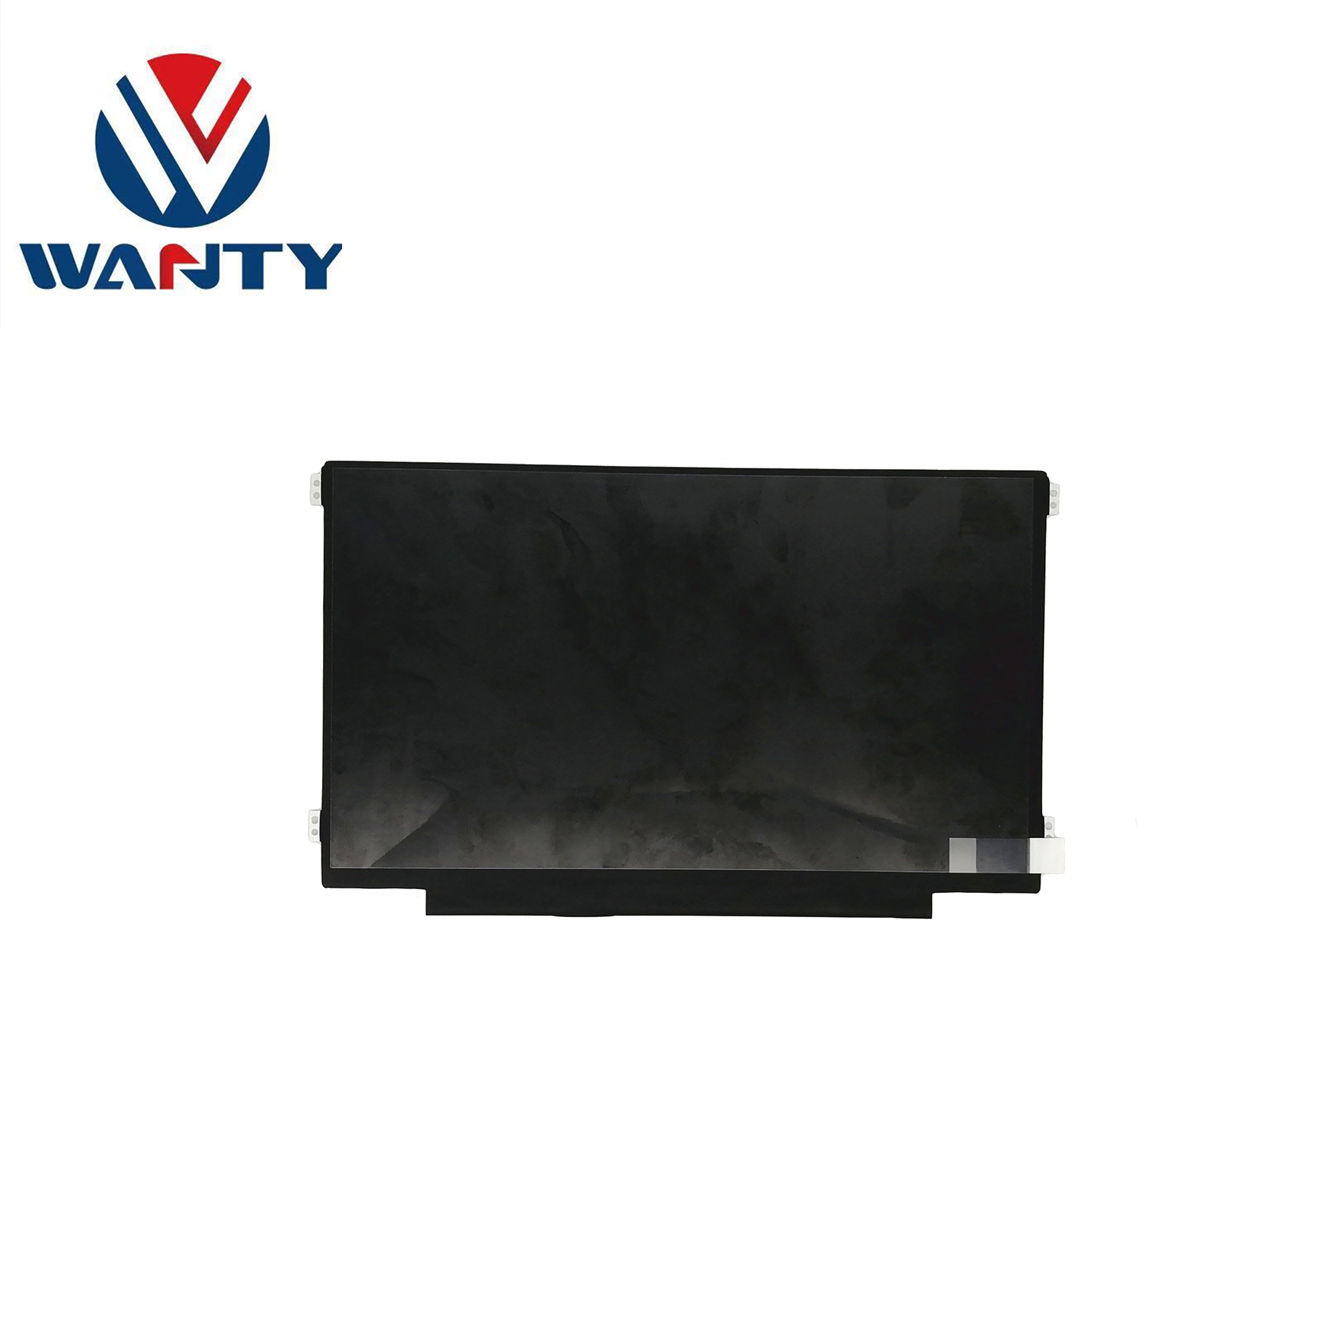 11.6 Pollici EDP Display LCD TFT Modulo LCD 1366*768 Monitor